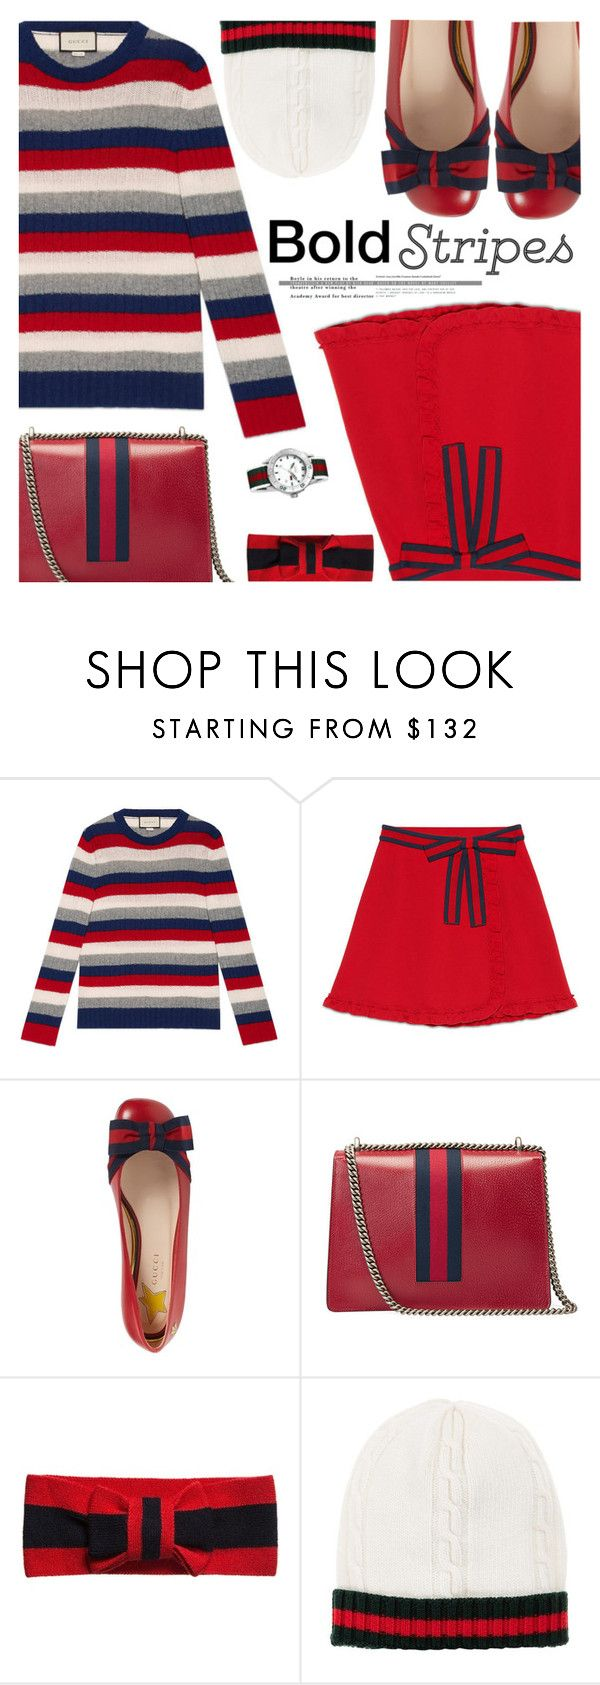 """Big, Bold Stripes"" by shoaleh-nia ❤ liked on Polyvore featuring Gucci"